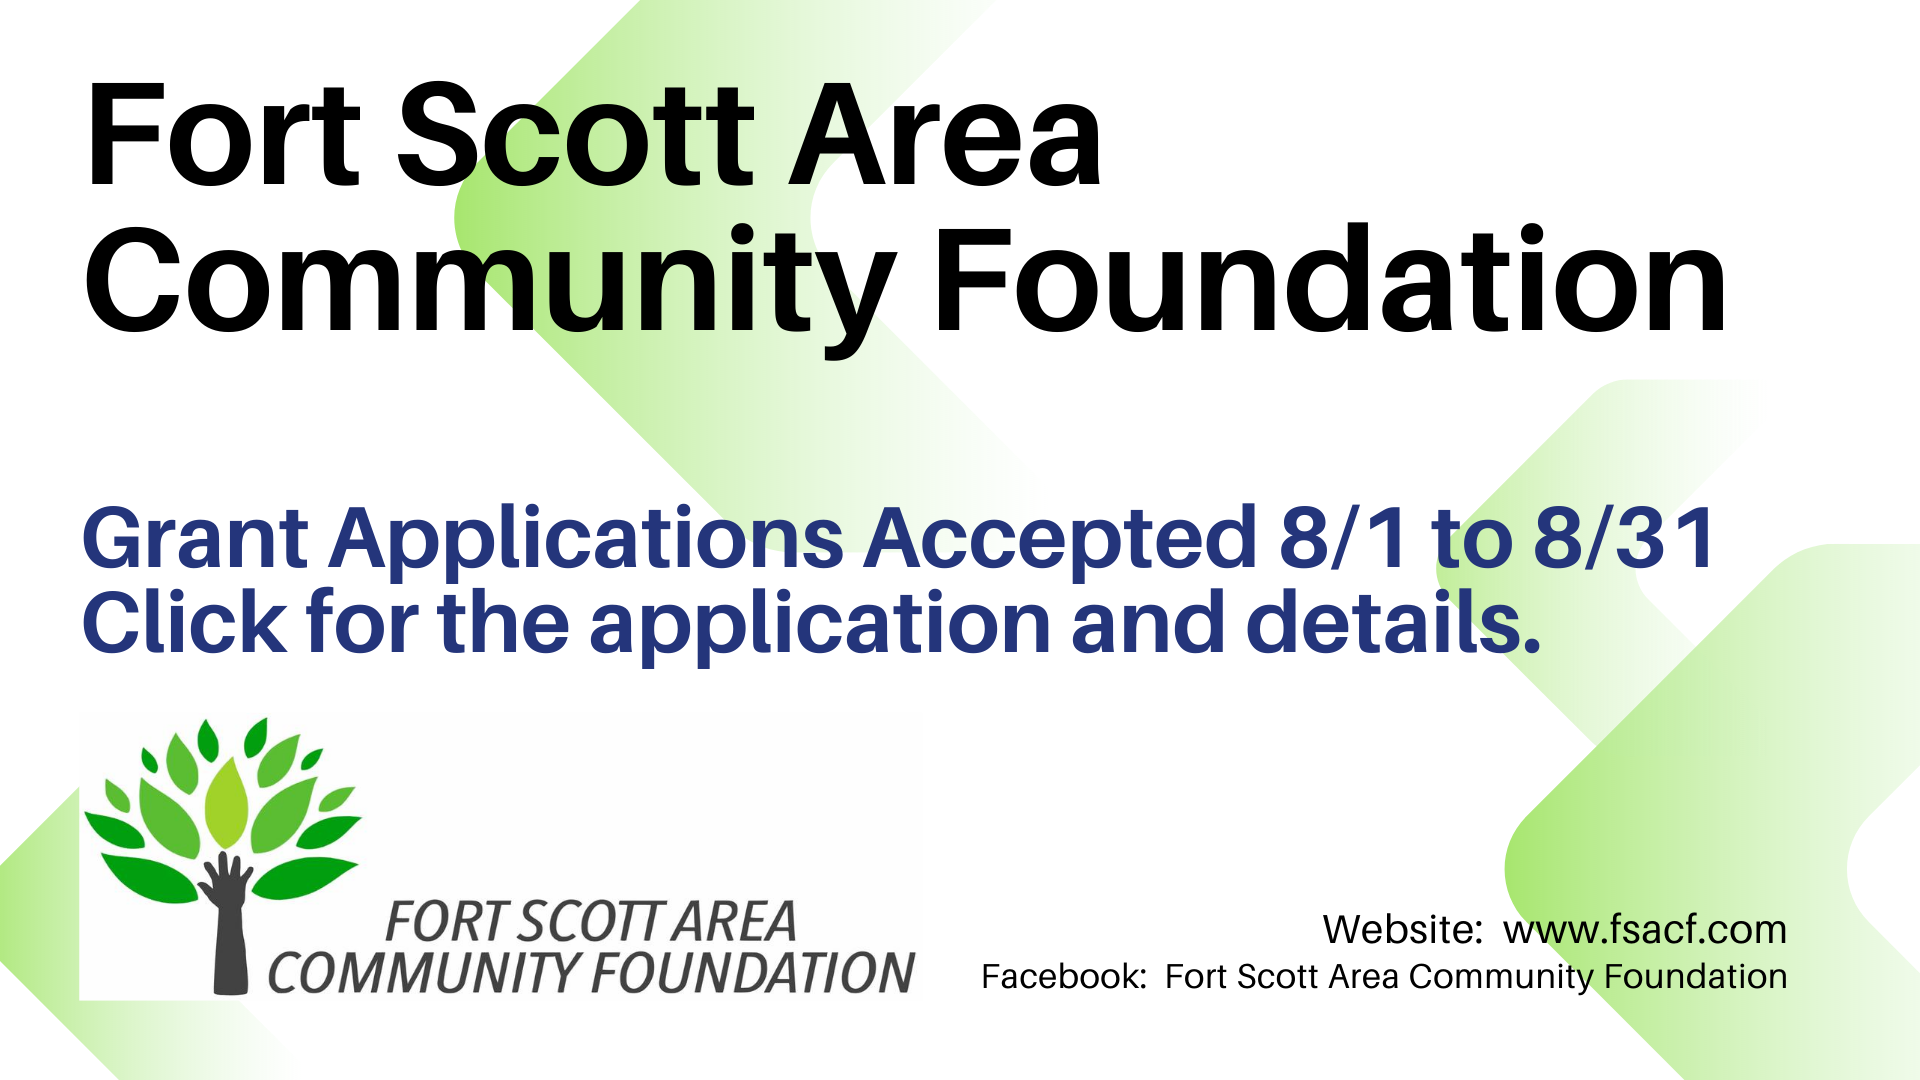 Fort-Scott-Area-Community-Foundation-Grant-Applications-Accepted-8_1-to-8_31-Click-for-the-application-and-details..png